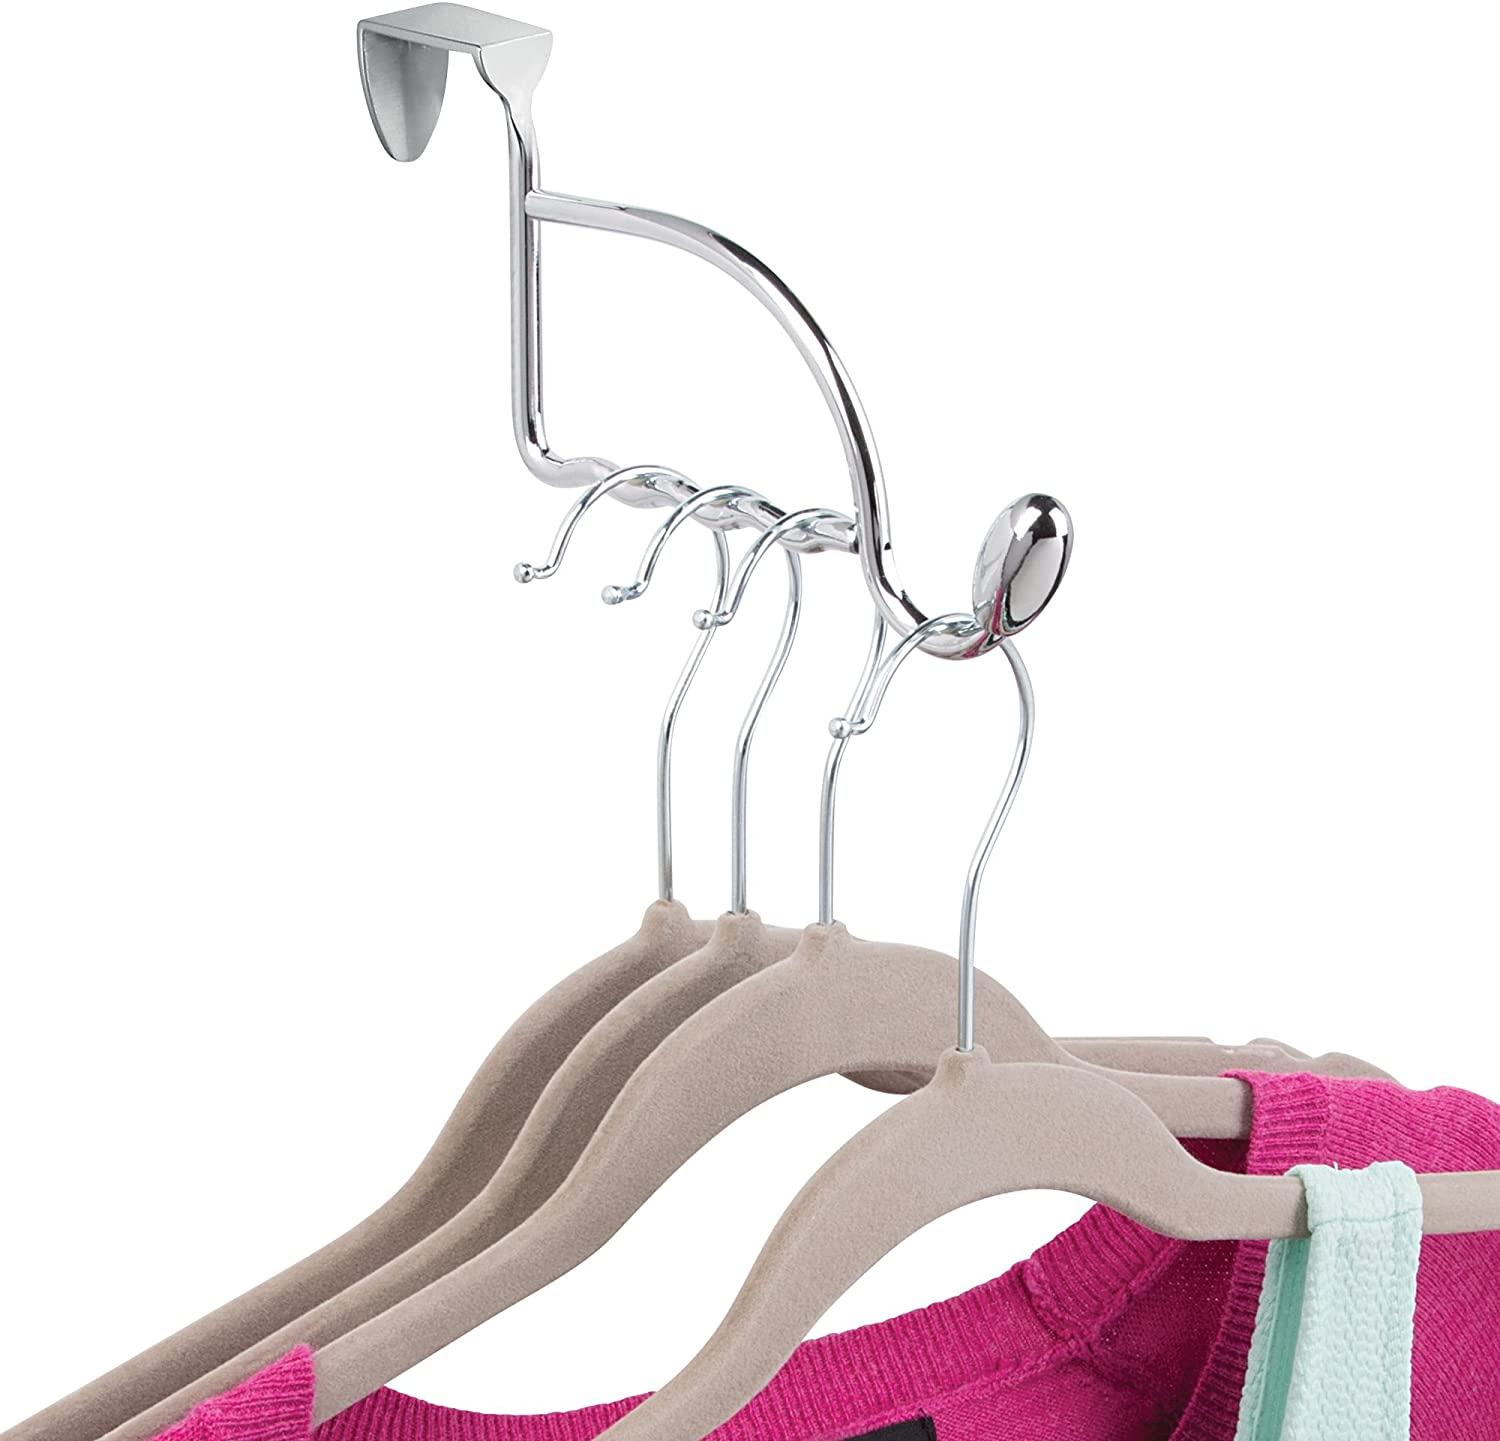 B00004XSFM iDesign Orbinni Over the Door Valet Hook for Coats, Hats, Robes, Towels, Sweaters, Perfect for Bedroom, Bathrooms and Mudroom Closets, 1 Hook With 4 Slots for Clothing Hangers, Chrome 714rMzDXs6L